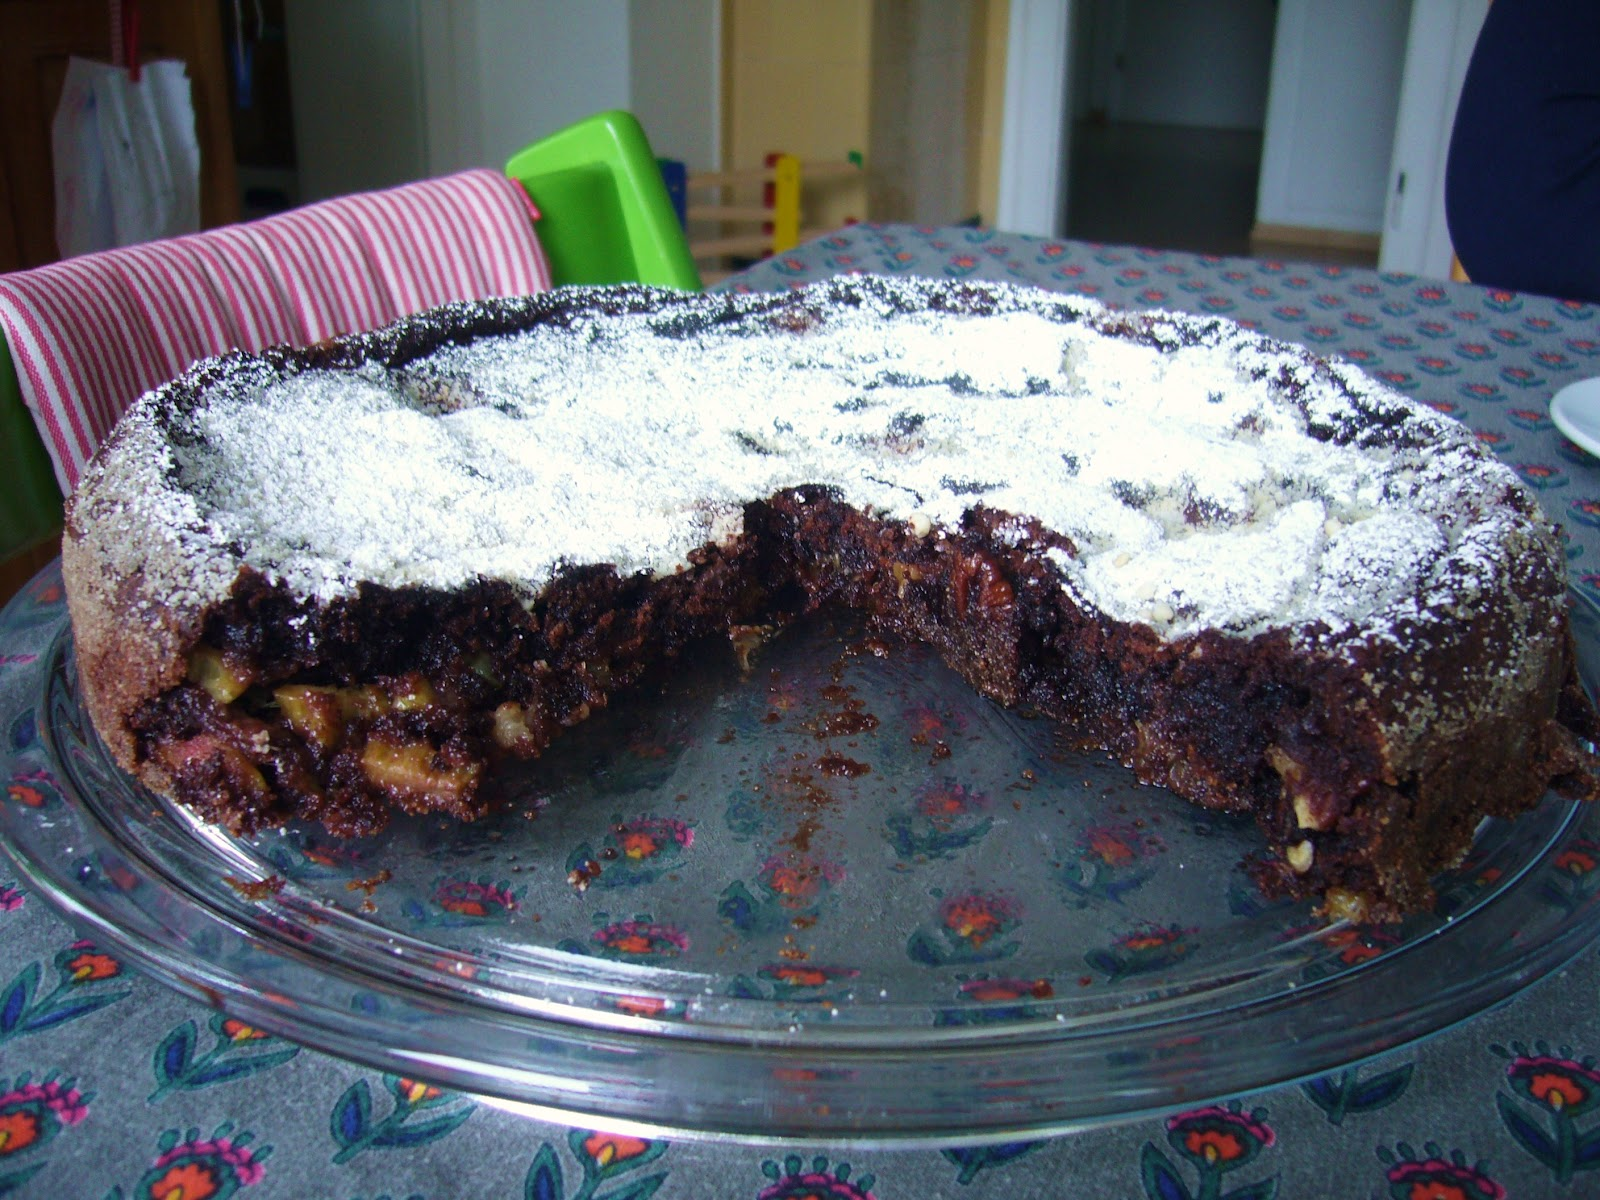 luscious chocolate rhubarb pecan cake with chili pepper. Black Bedroom Furniture Sets. Home Design Ideas